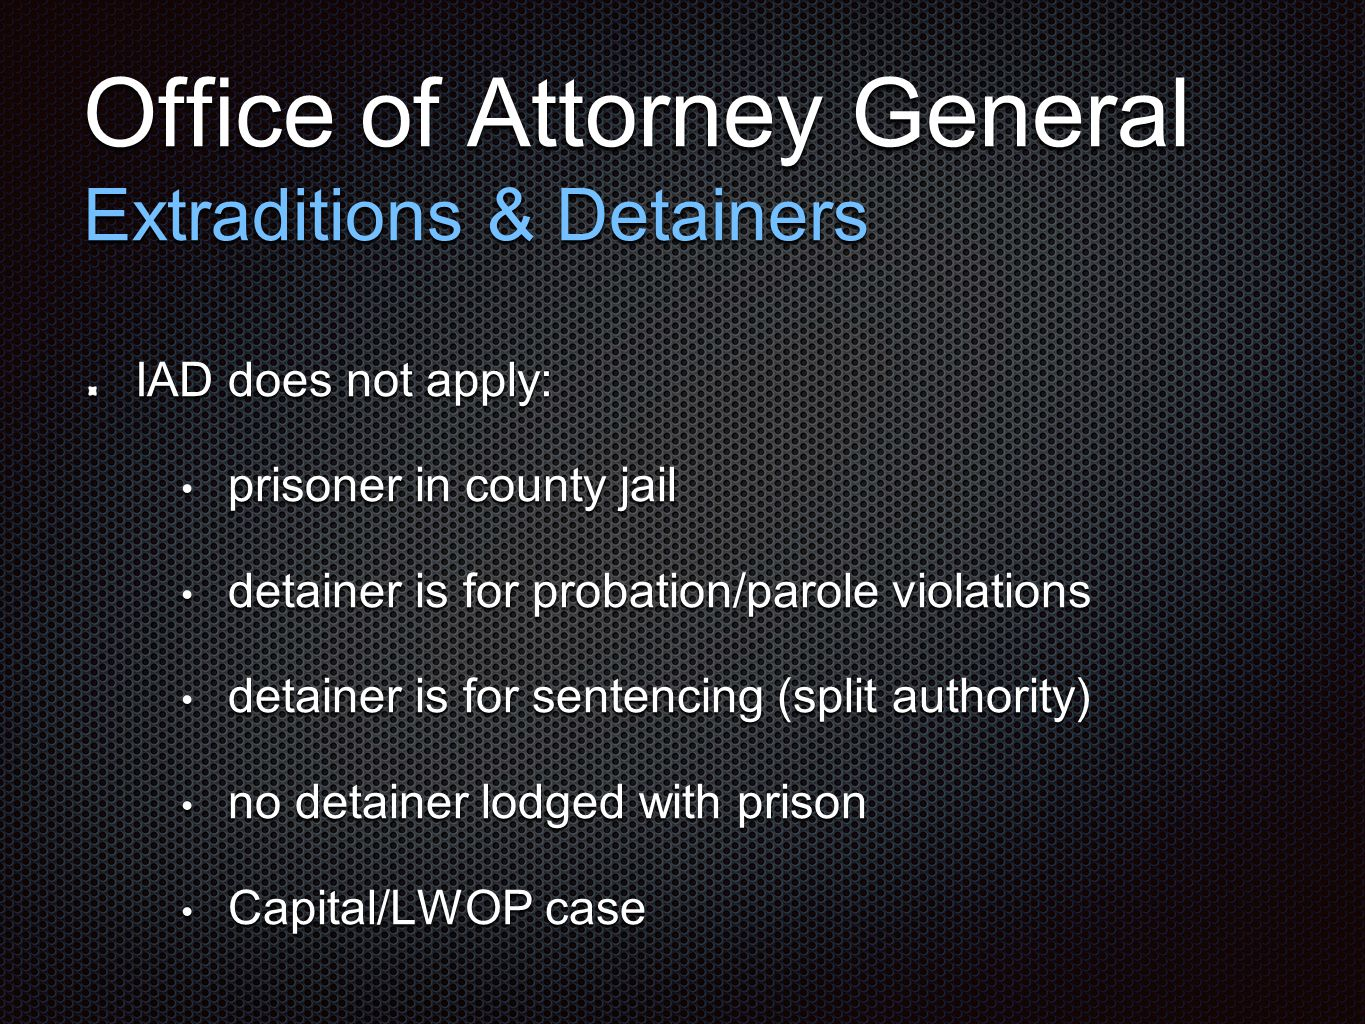 Office of Attorney General Extraditions & Detainers IAD does not apply: prisoner in county jail prisoner in county jail detainer is for probation/parole violations detainer is for probation/parole violations detainer is for sentencing (split authority) detainer is for sentencing (split authority) no detainer lodged with prison no detainer lodged with prison Capital/LWOP case Capital/LWOP case